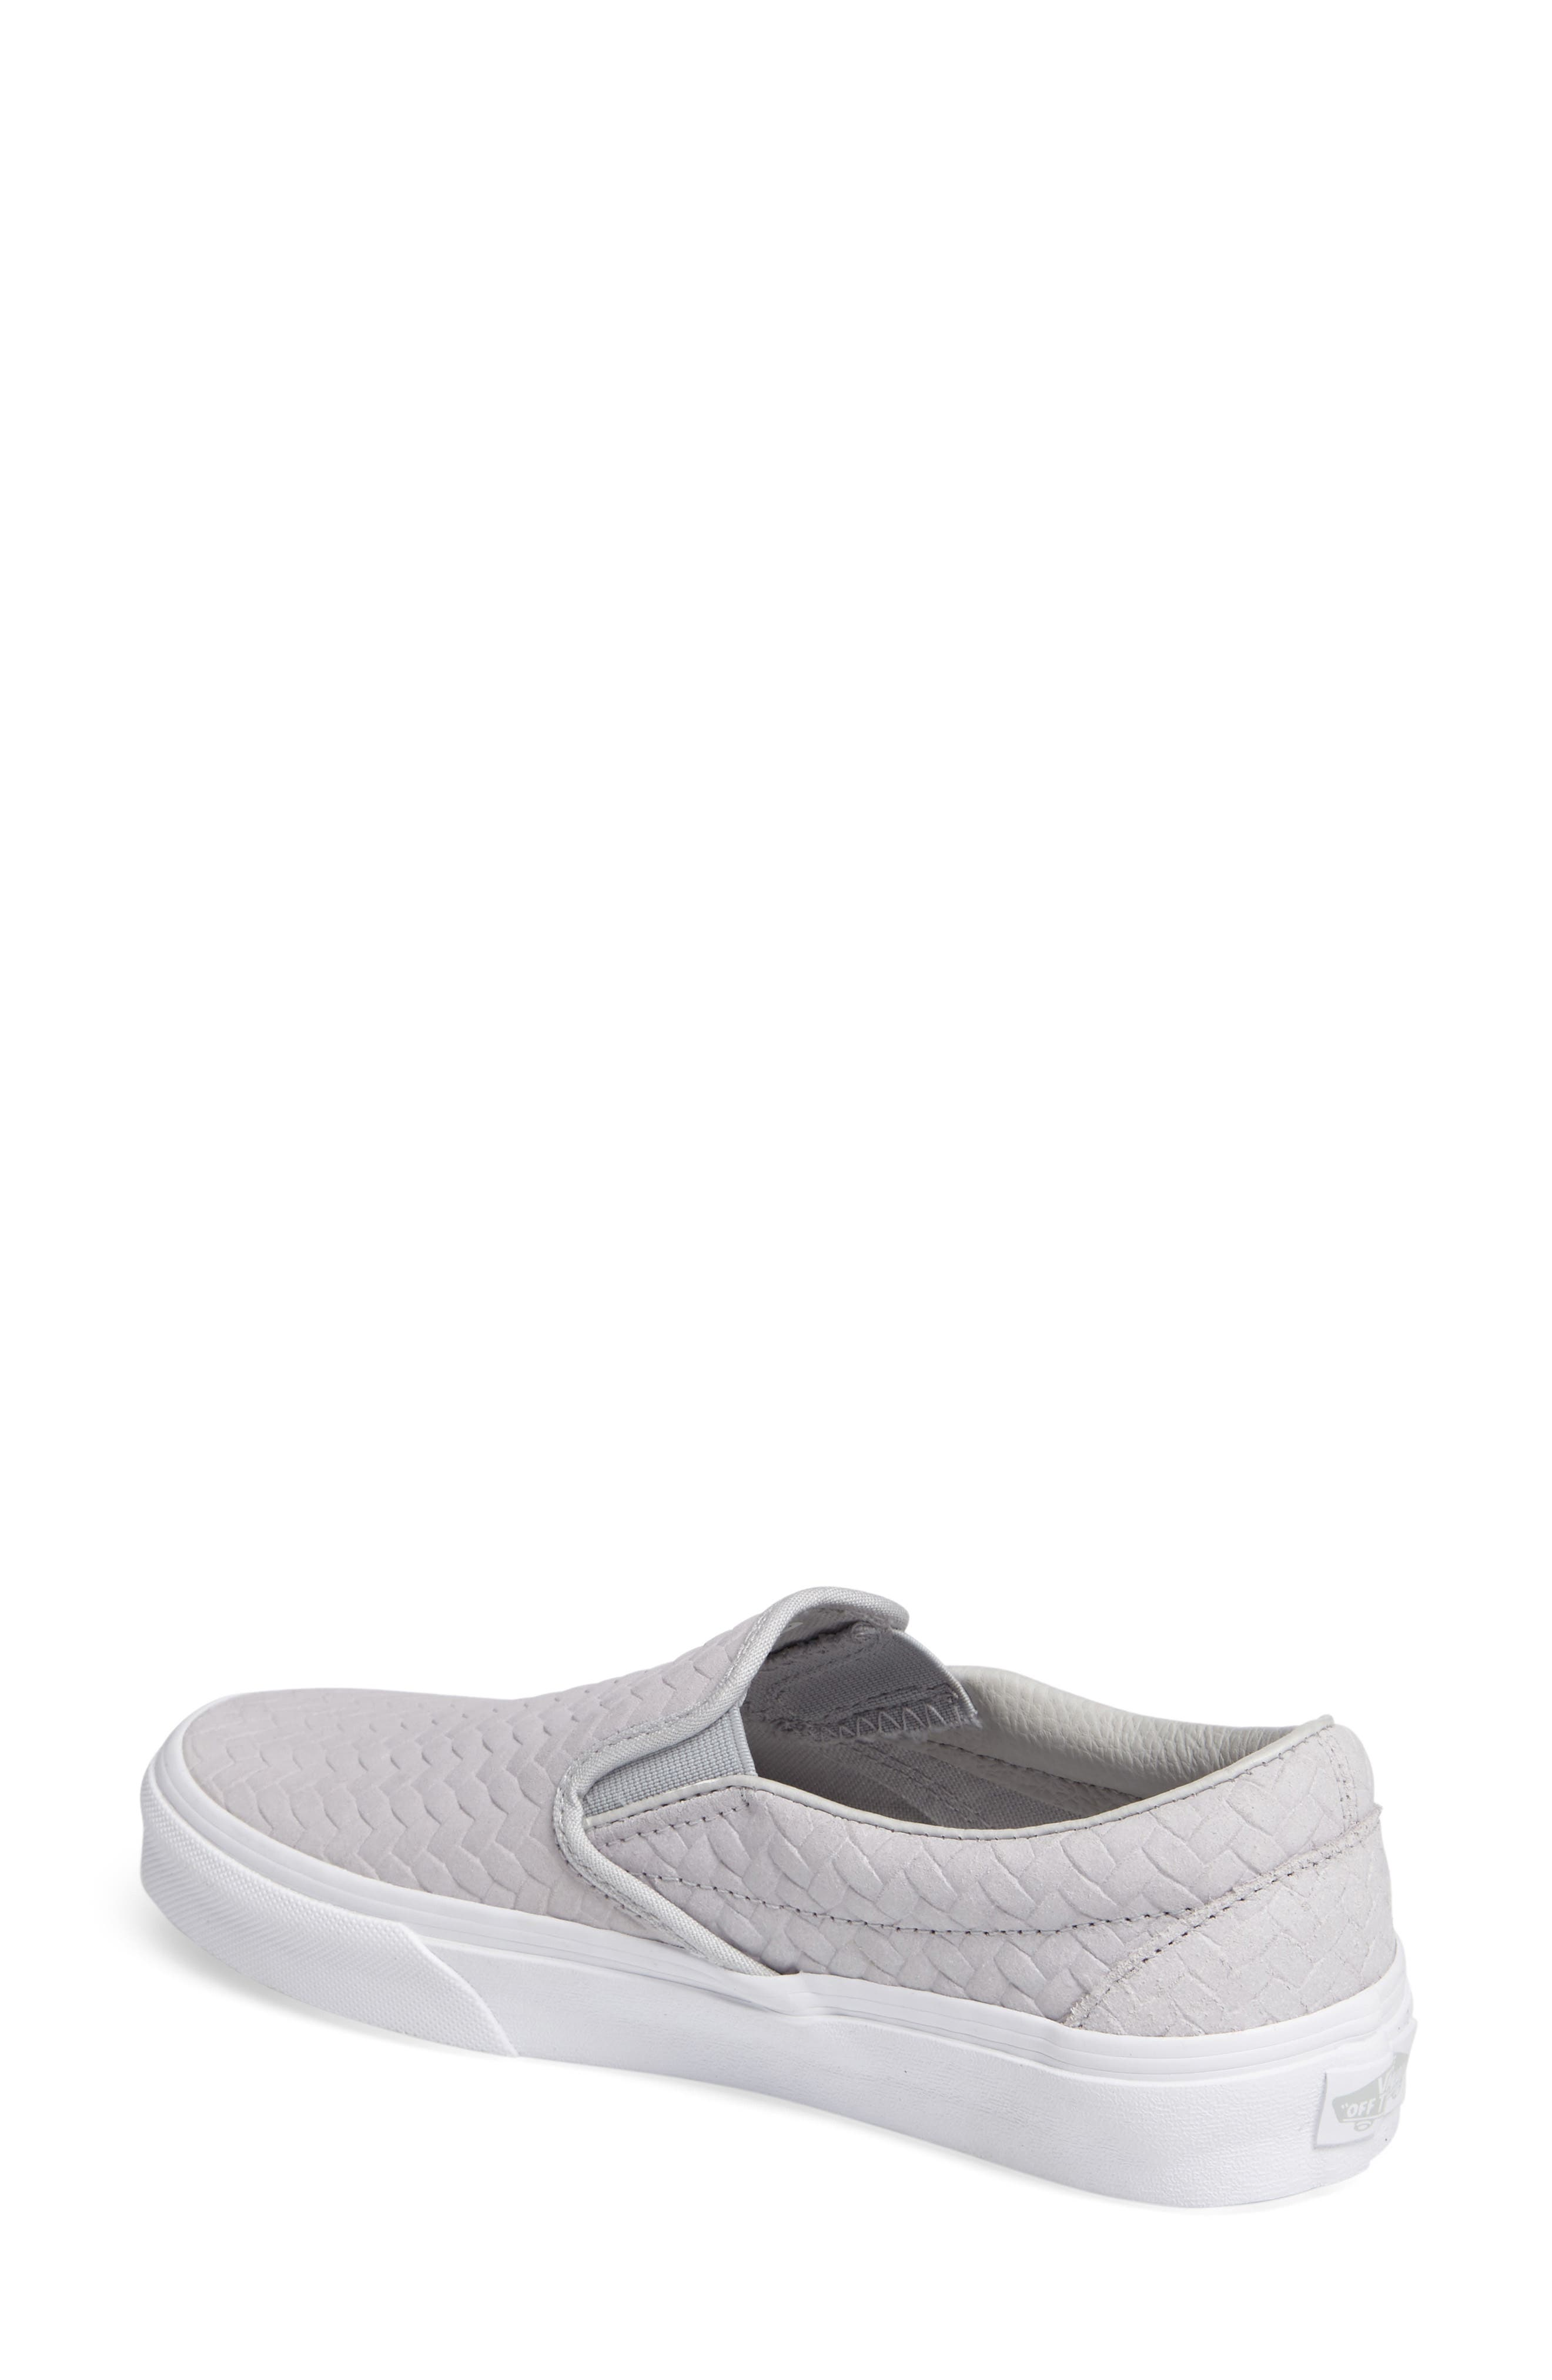 Classic Slip-On Sneaker,                             Alternate thumbnail 137, color,